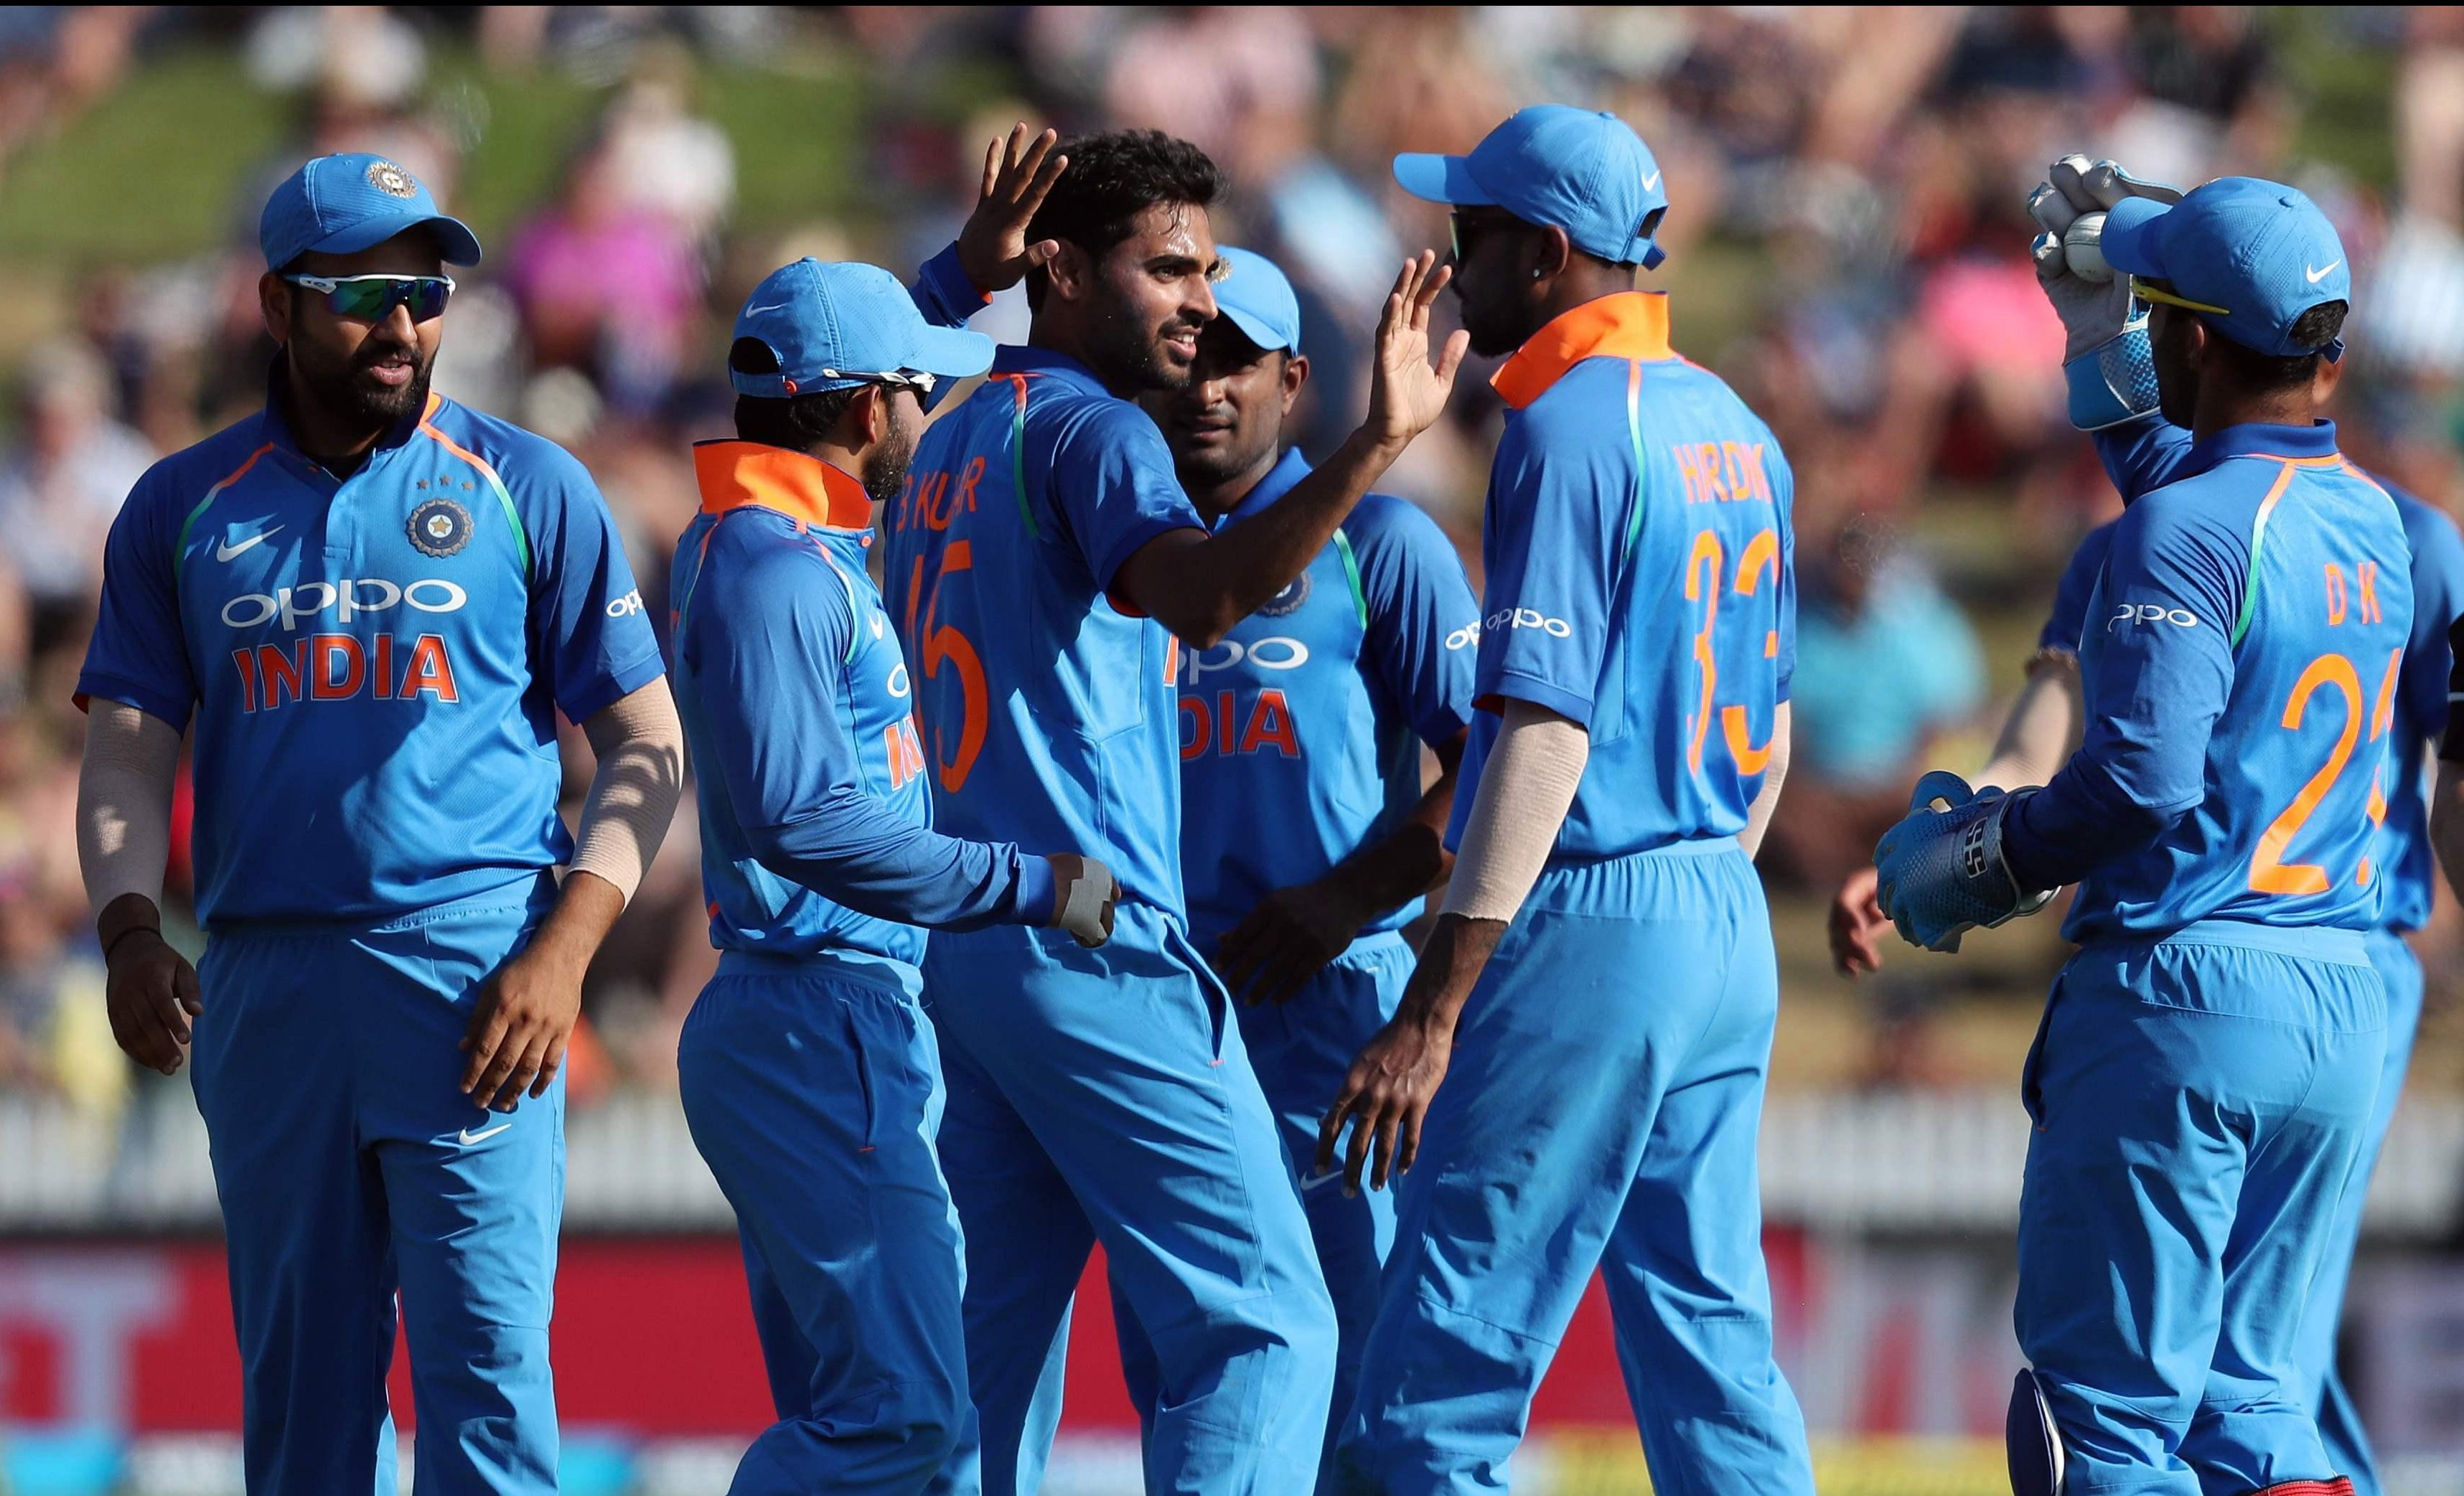 New Zealand vs India 5th ODI live streaming, TV channel, and cricket start time for the one-day international